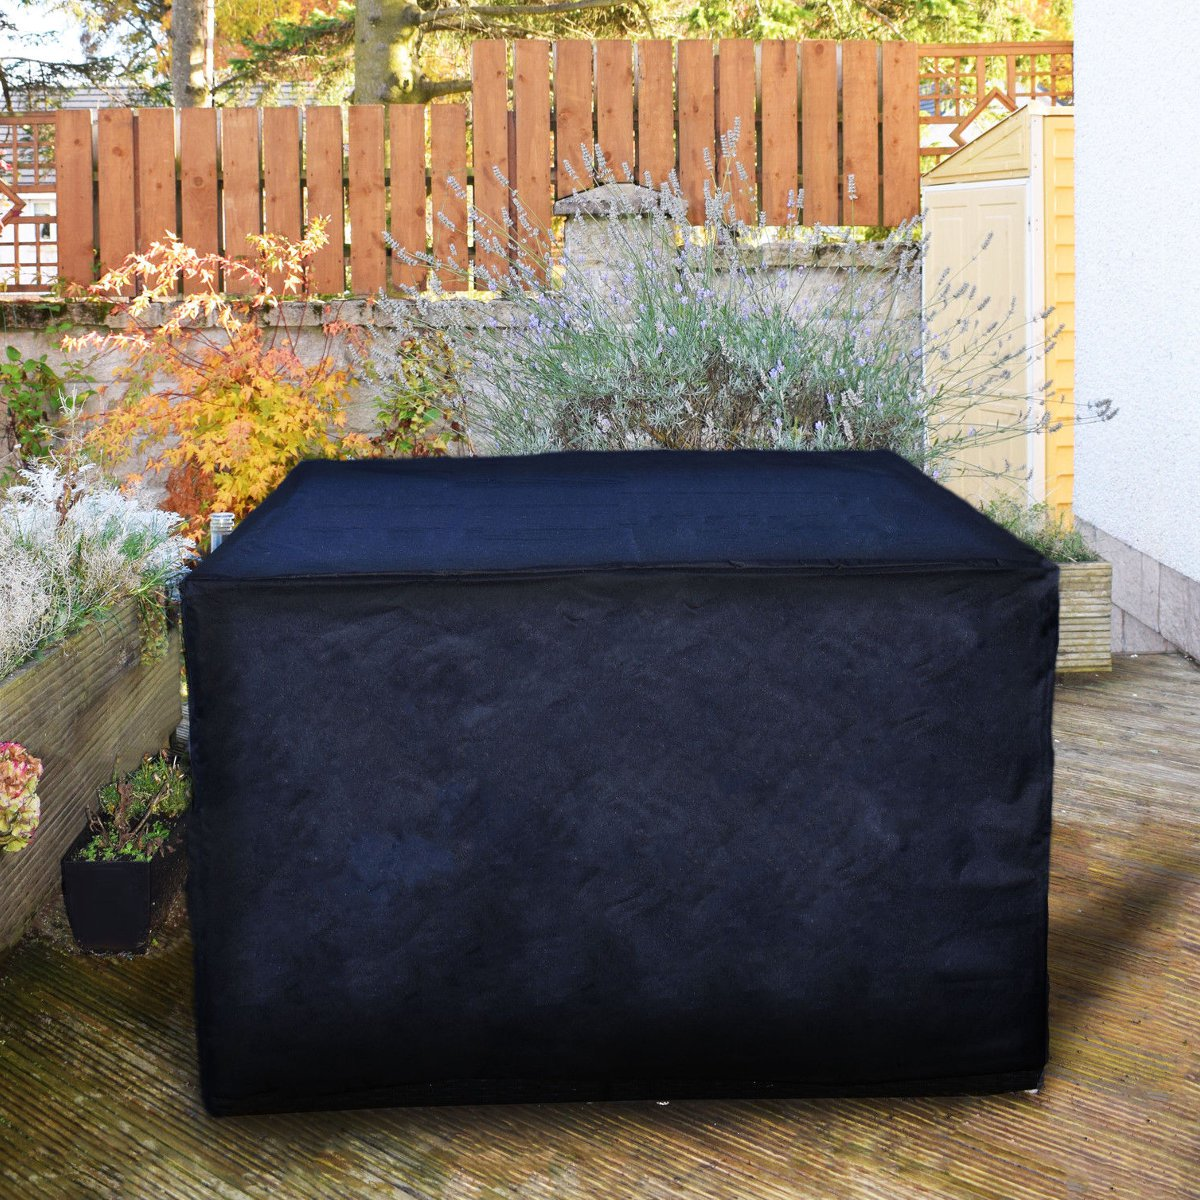 OxbridgeBlack Waterproof Rattan Cube Outdoor Garden Patio Furniture Table Set Cover Protection